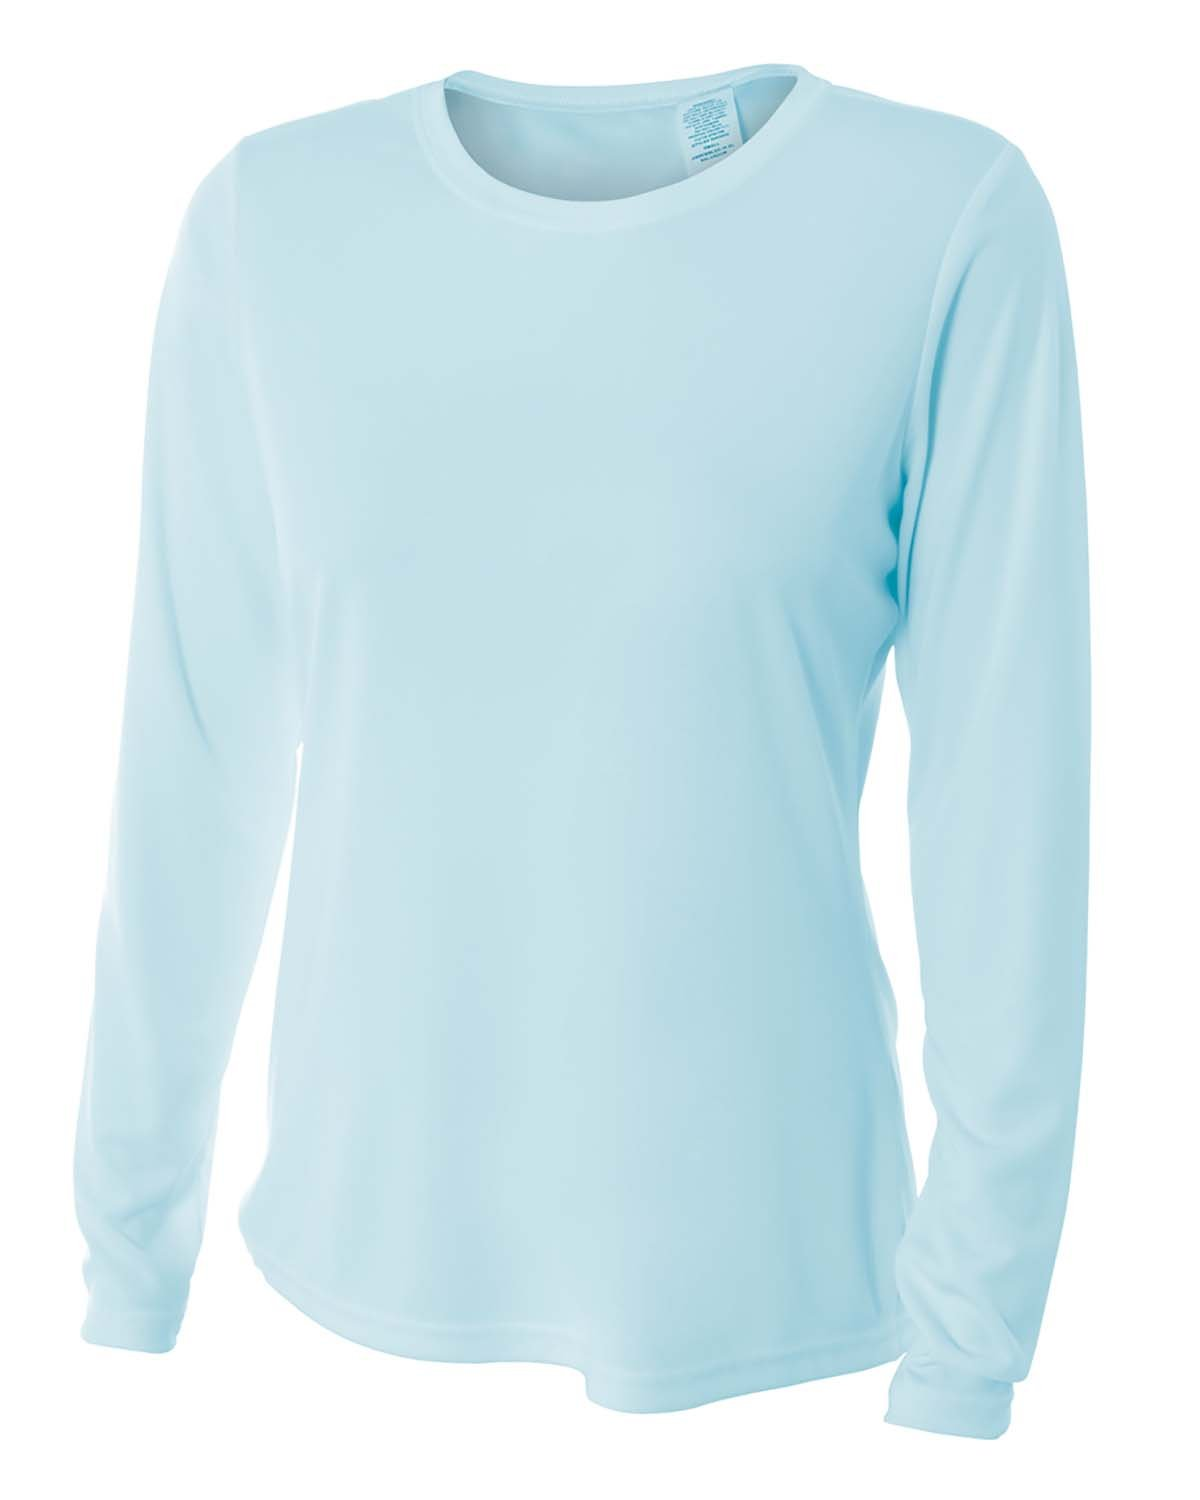 A4 Ladies' Long Sleeve Cooling Performance Crew Shirt PASTEL BLUE